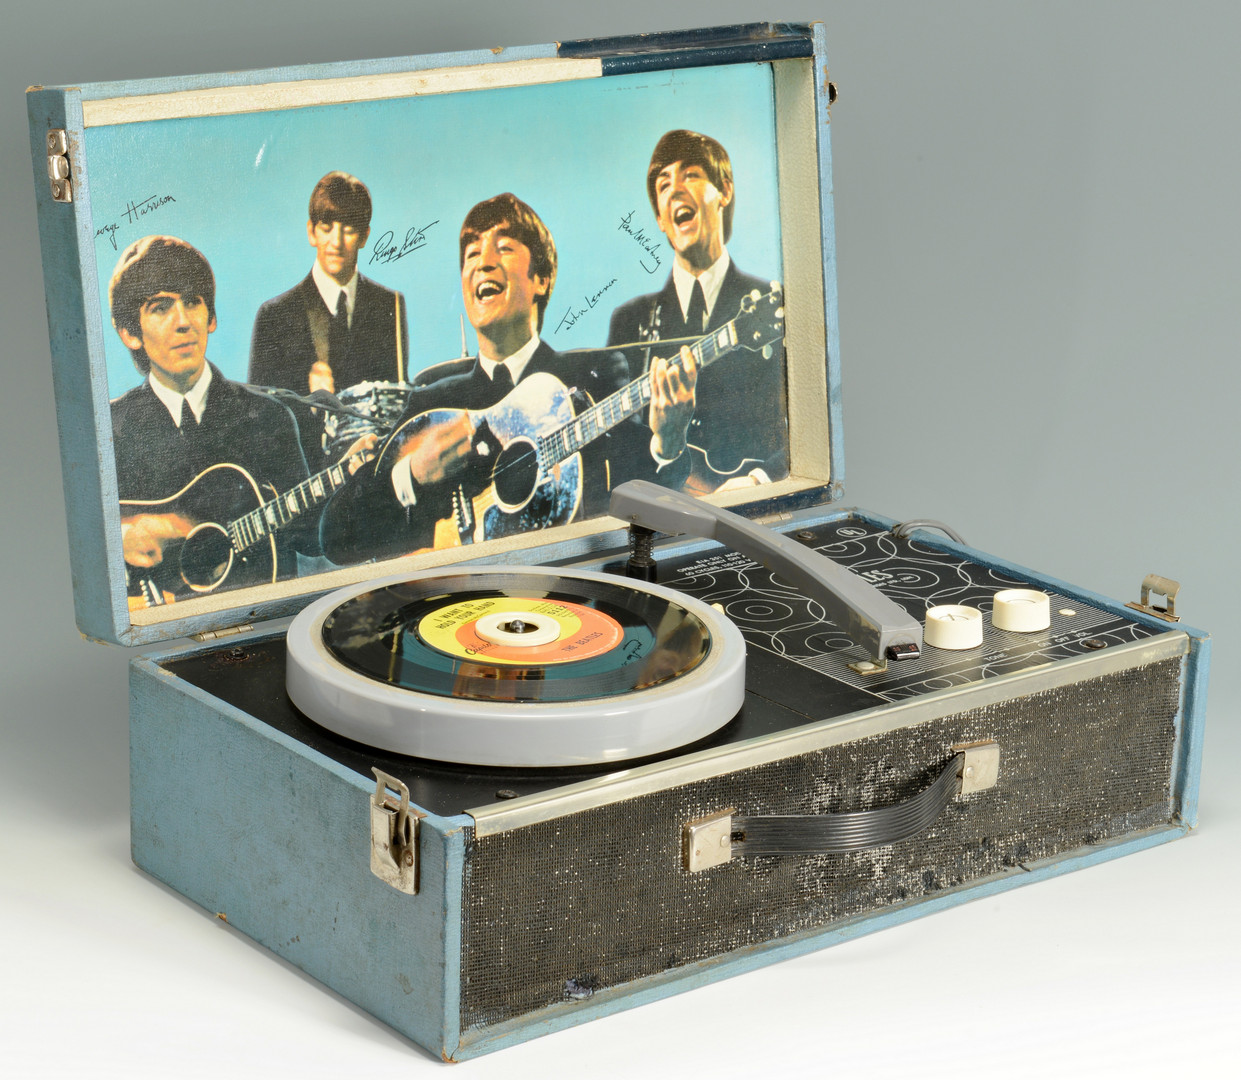 Cloth Cabinet Lot 737: 1964 Beatles Record Player Nems & One 45 Record